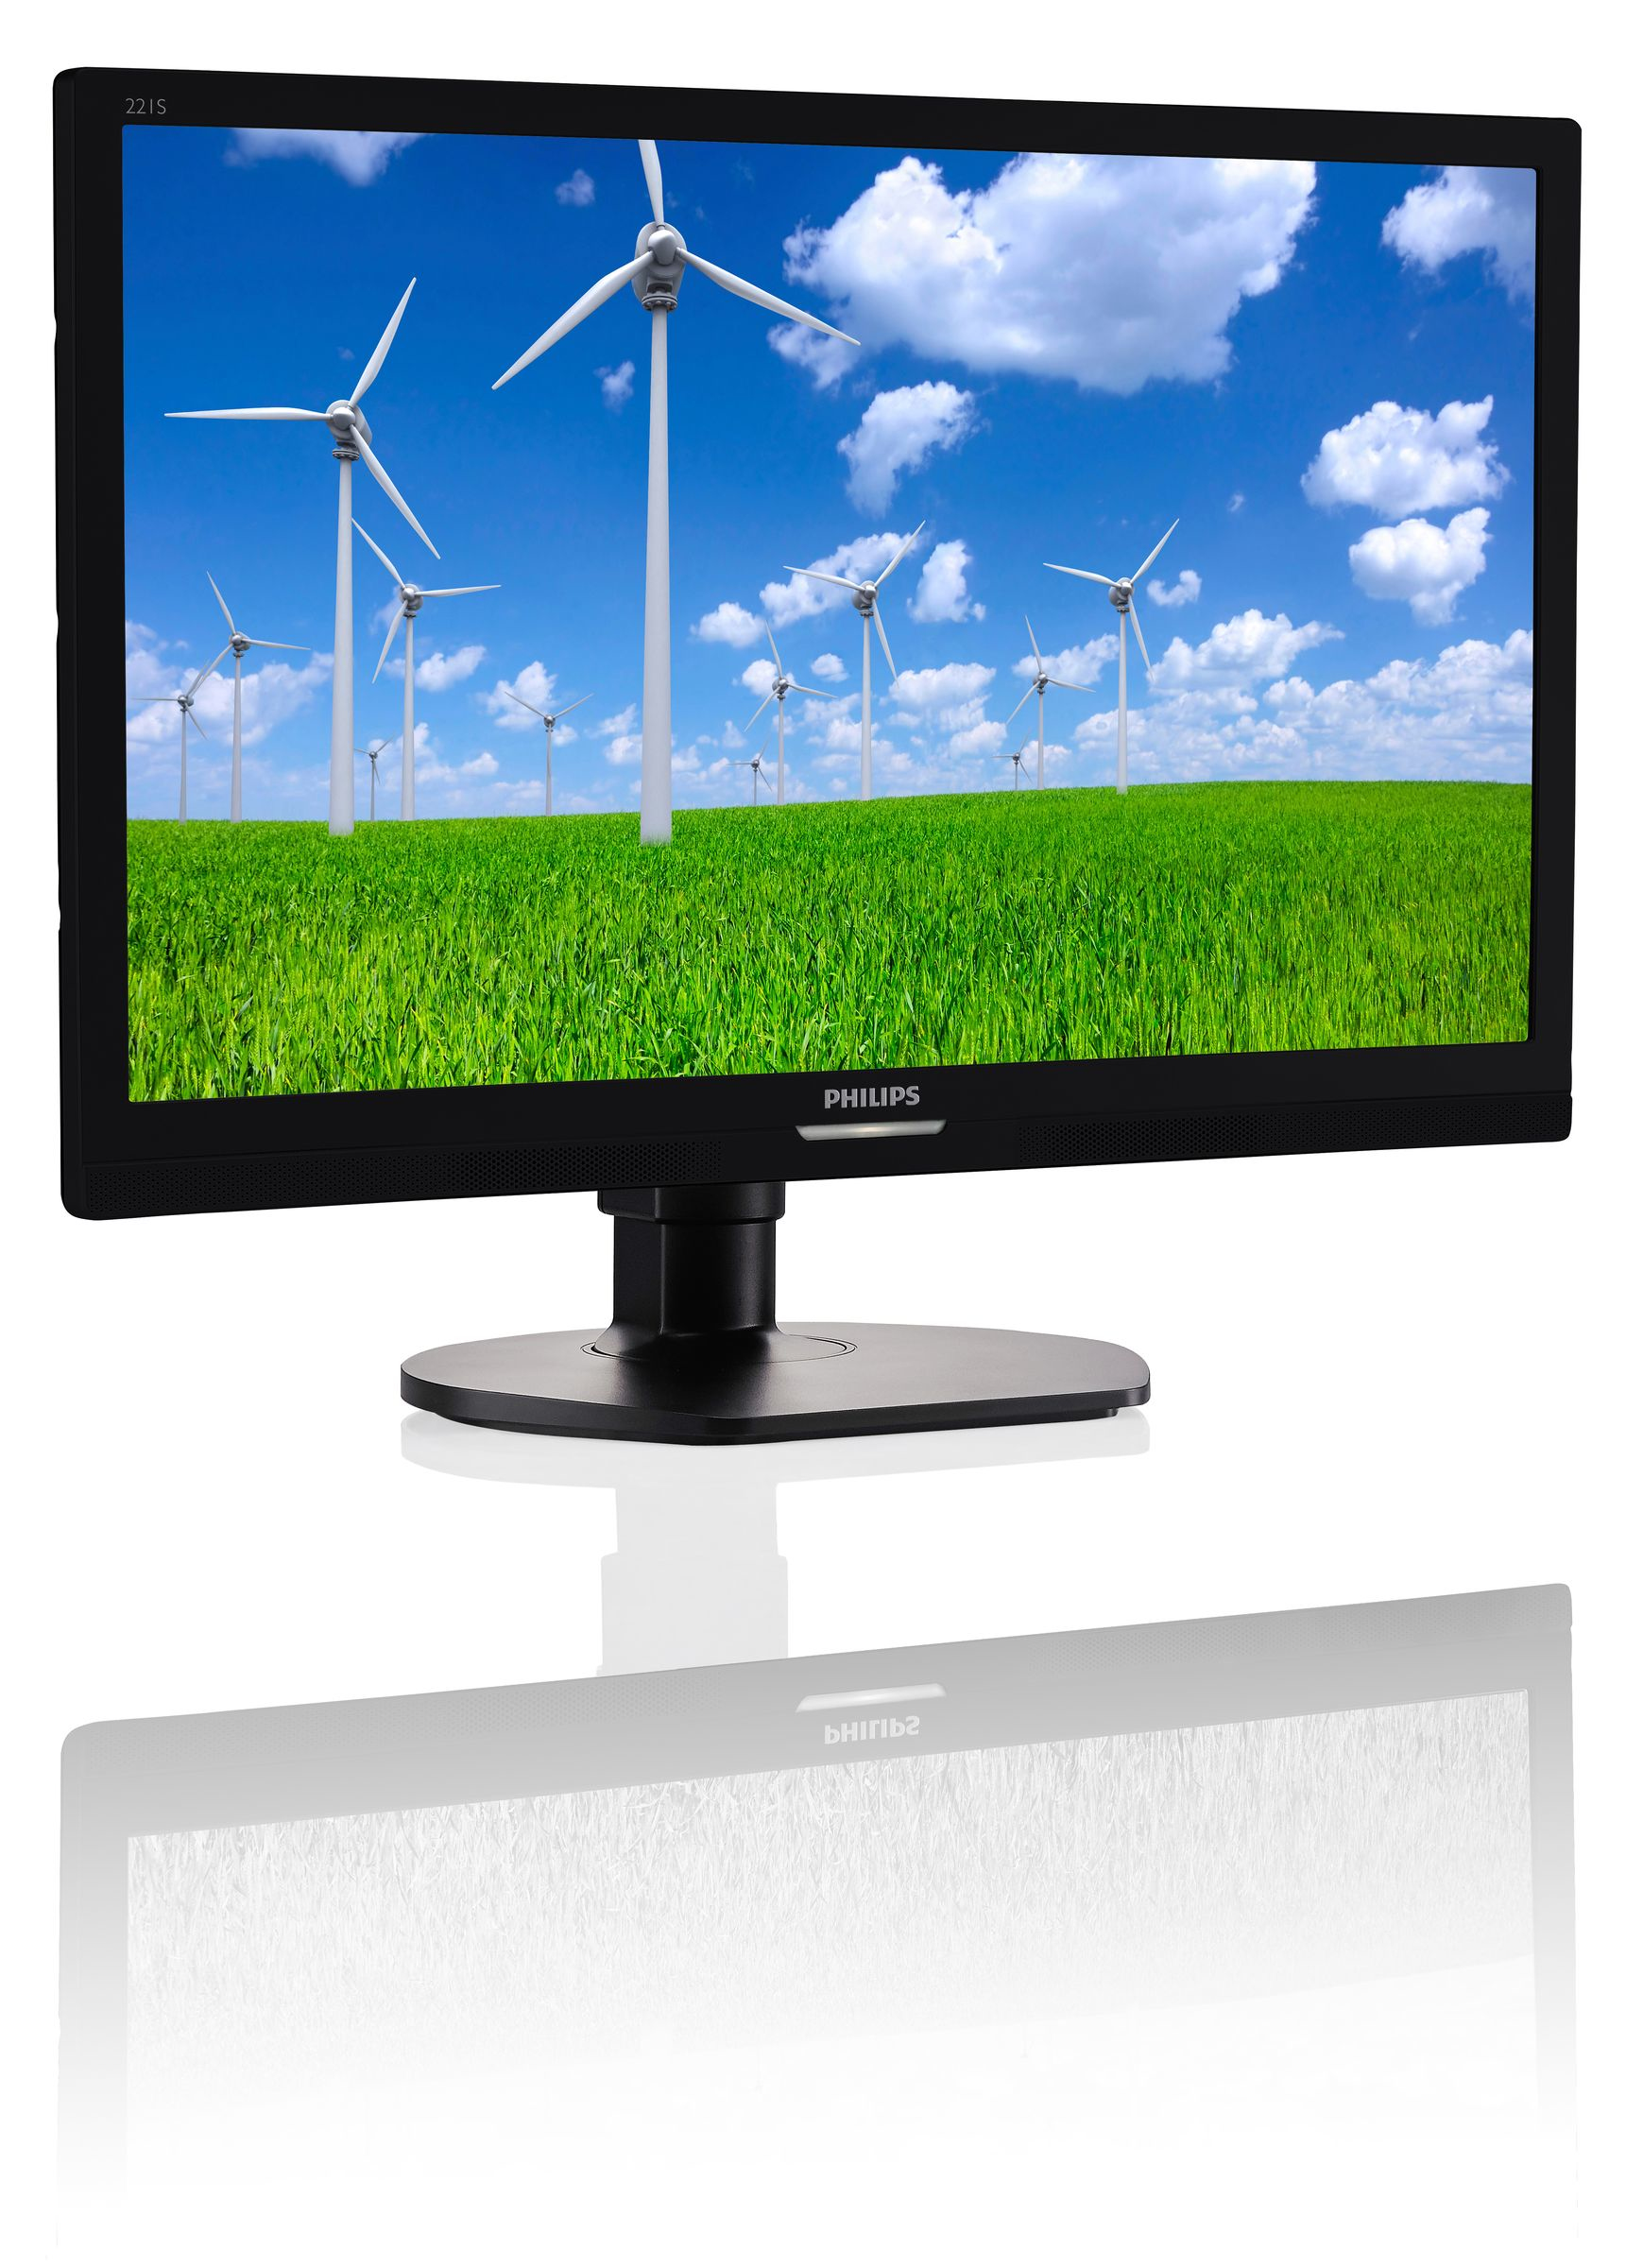 Philips Brilliance USB-docking LCD monitor